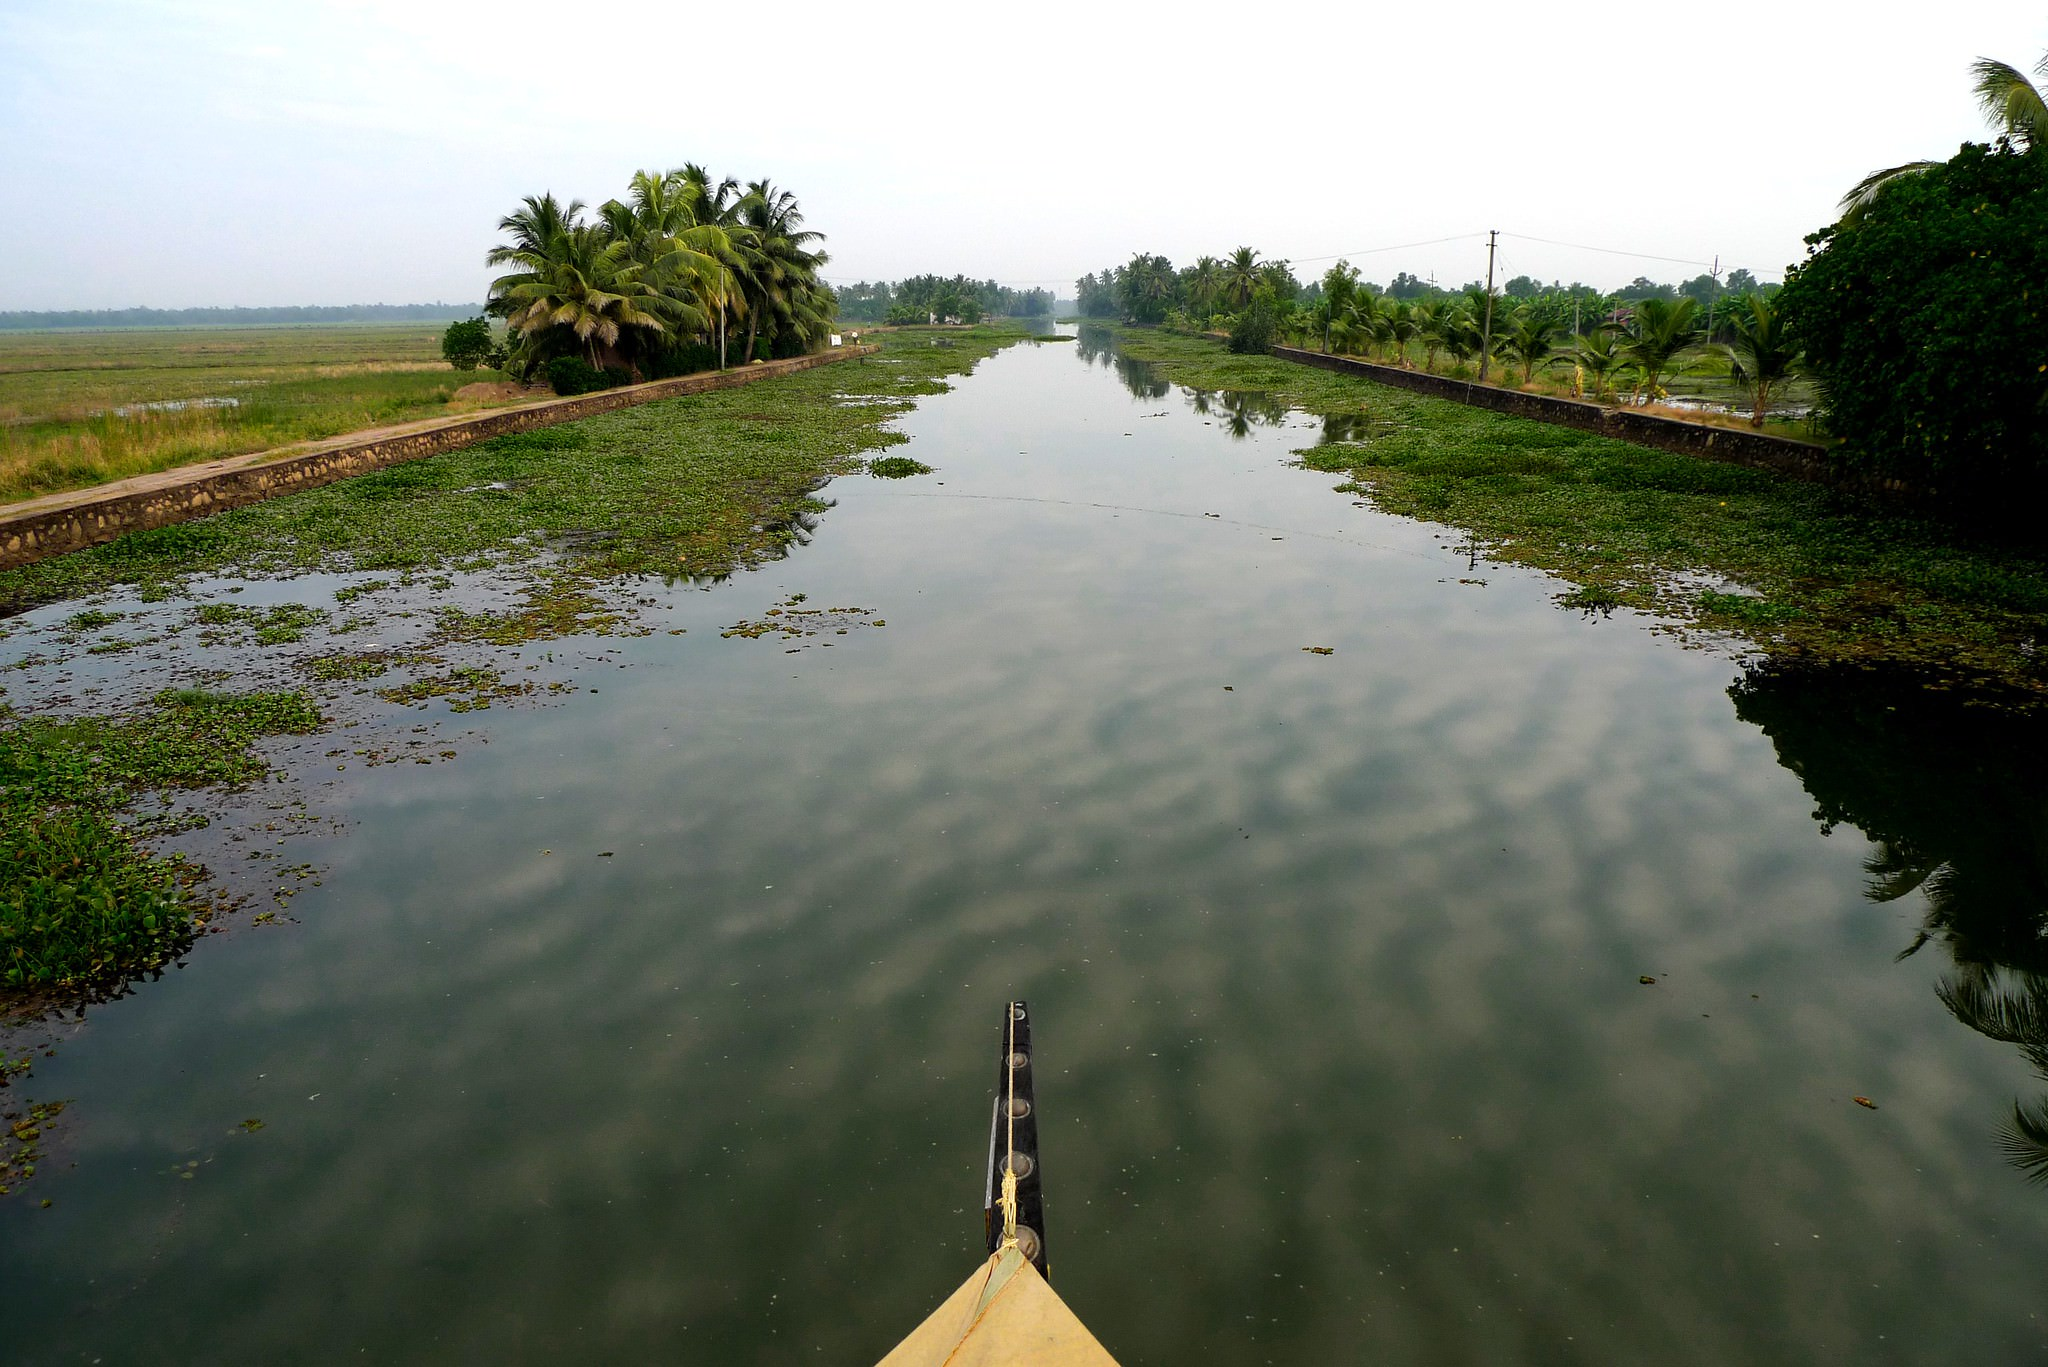 View of the Kerala backwaters